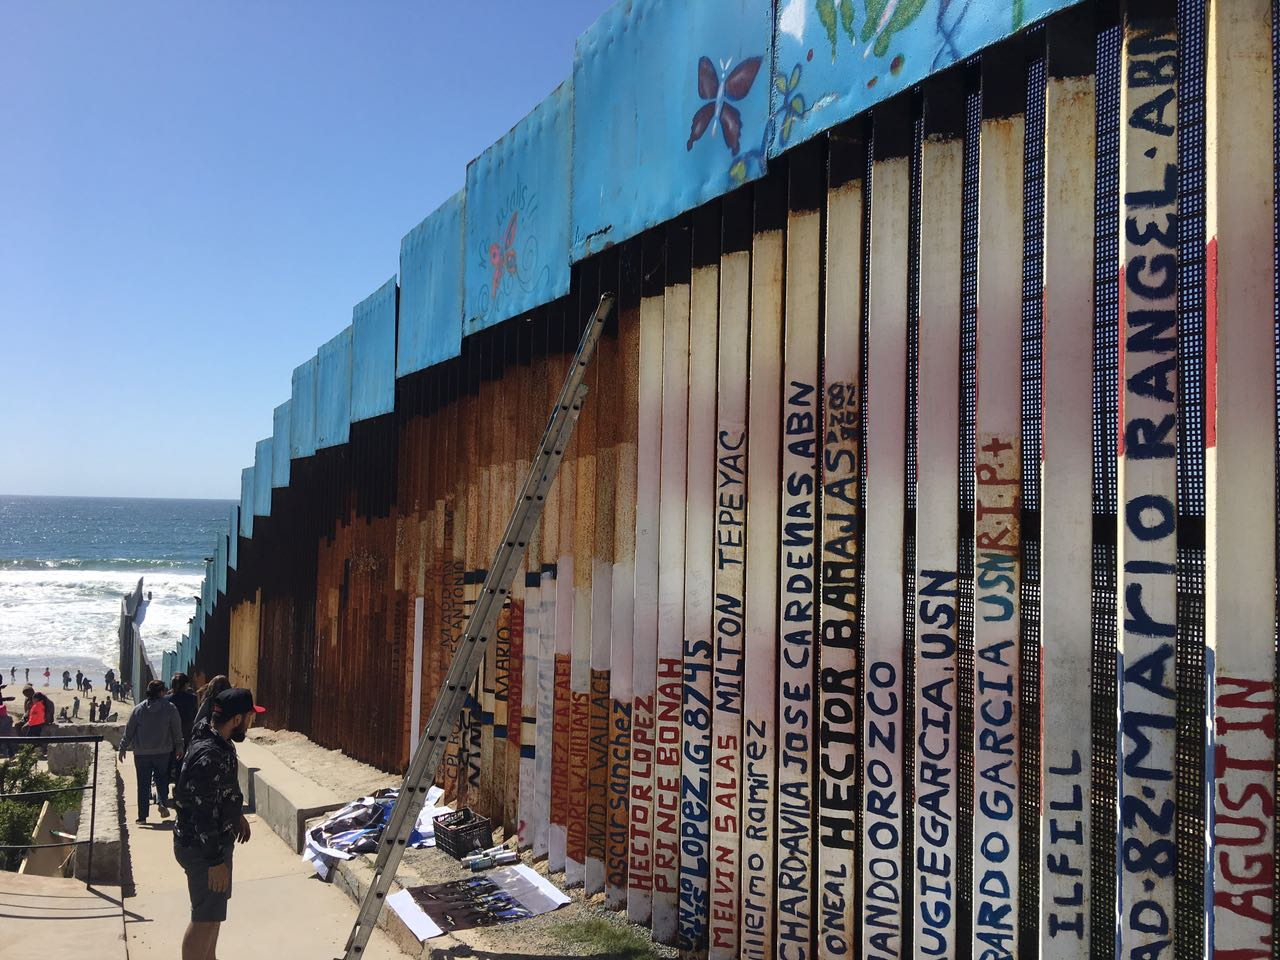 Border wall art on the Tijuana side, 2017.